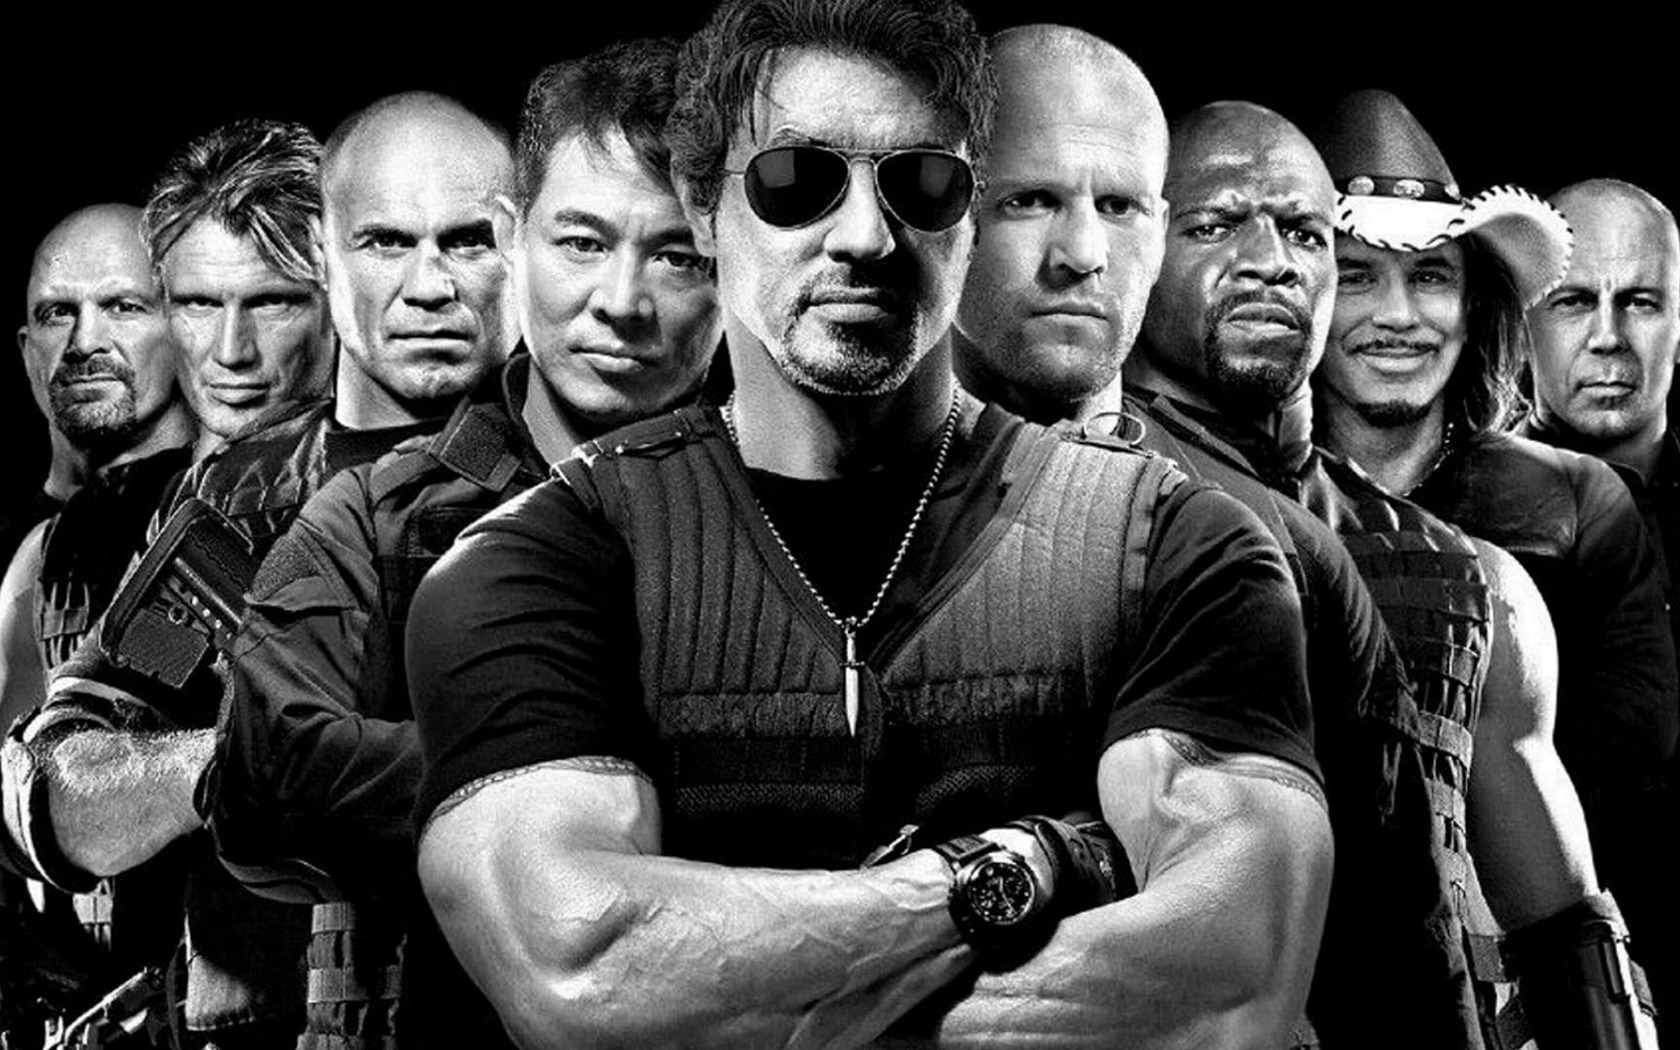 The expendables 2 hd movie wallpaper 03 1680x1050 download the expendables 2 hd movie wallpaper 03 1680x1050 wallpaper download voltagebd Choice Image